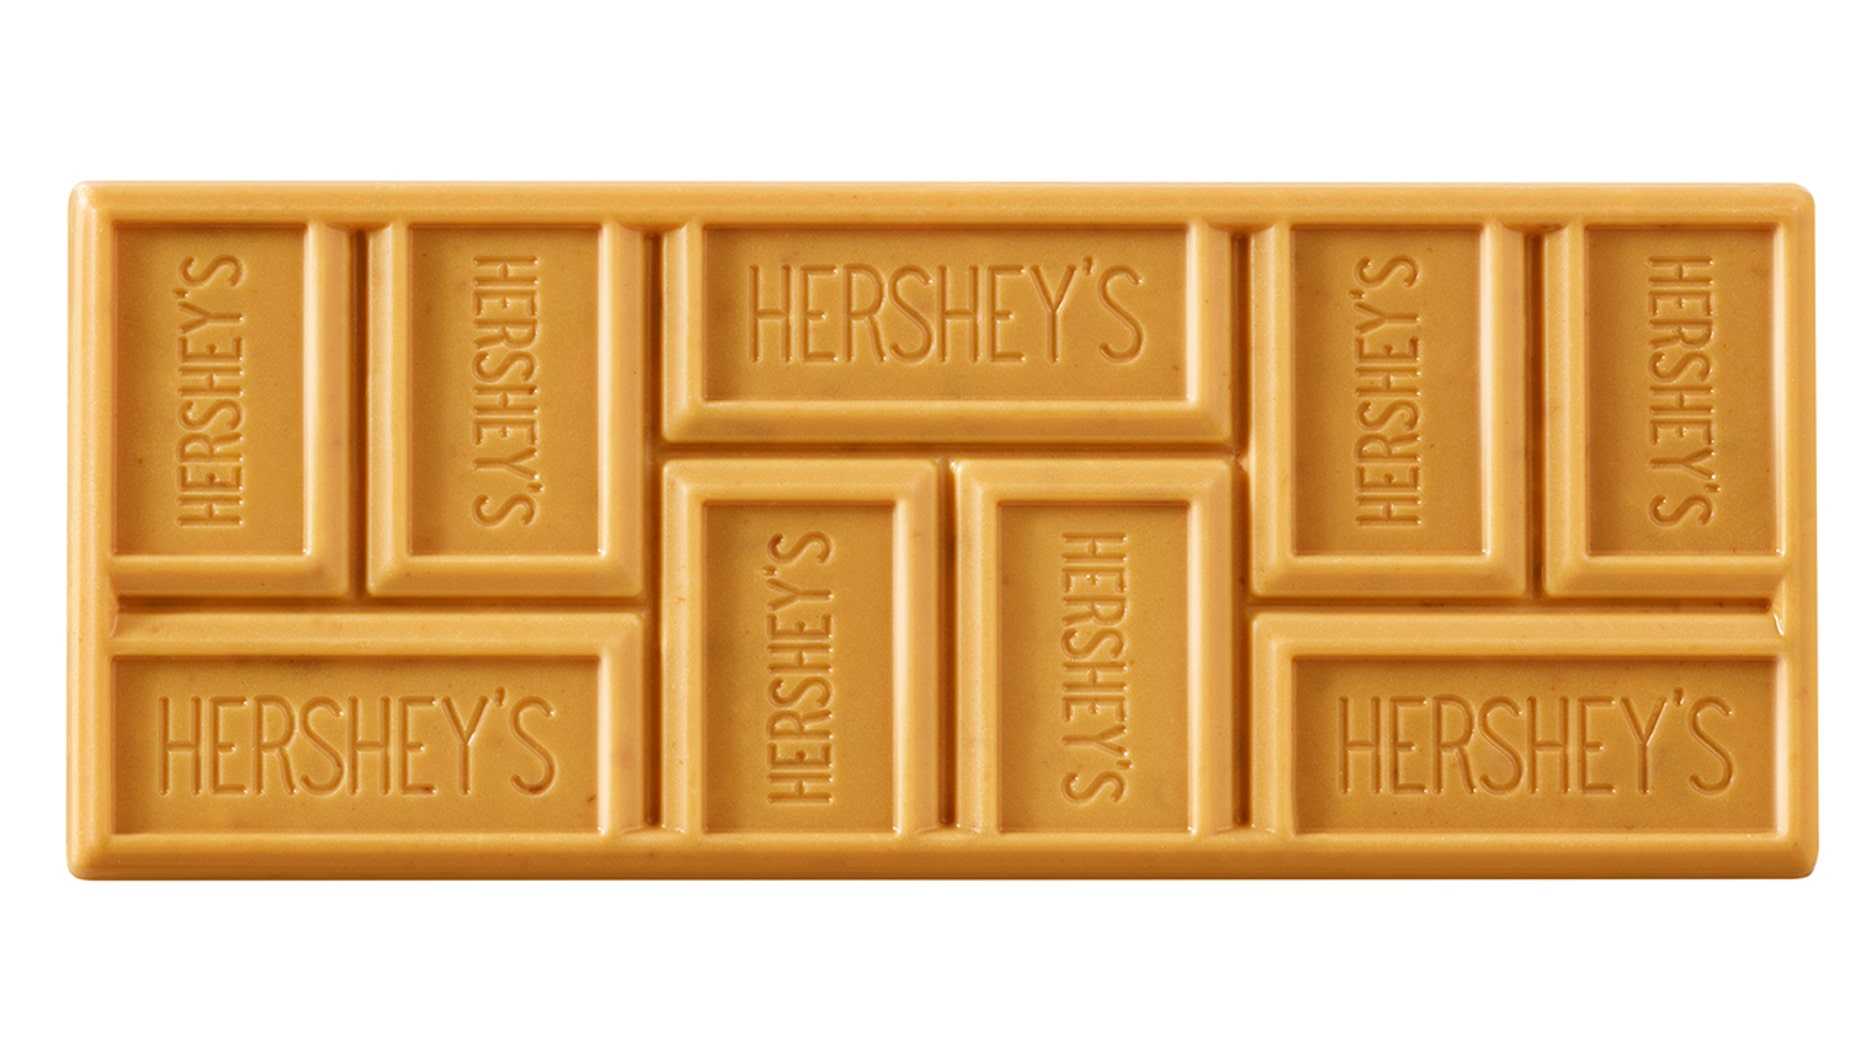 Hershey's latest flavor, Hershey's Gold, isn't chocolate but sounds just as delicious